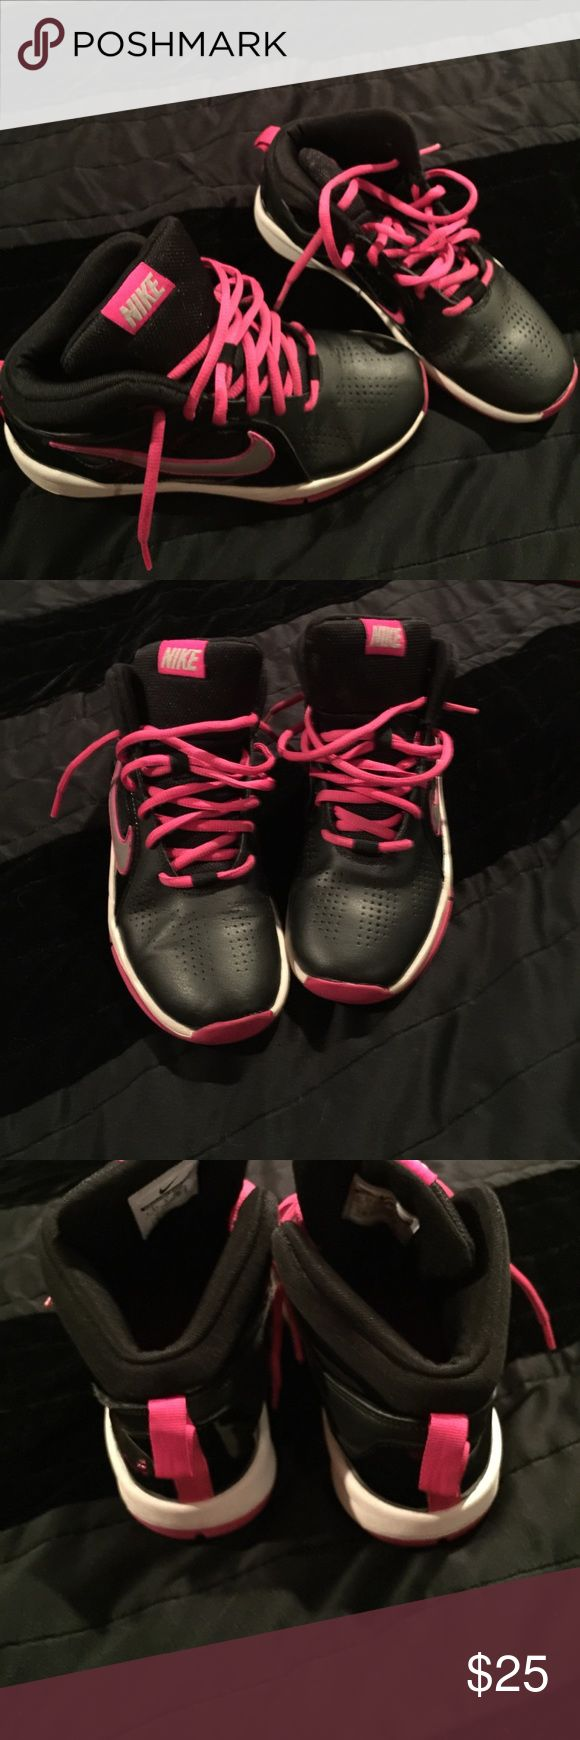 Girls Nike shoes Comfy pink & black tennis shoes Nike Shoes Sneakers